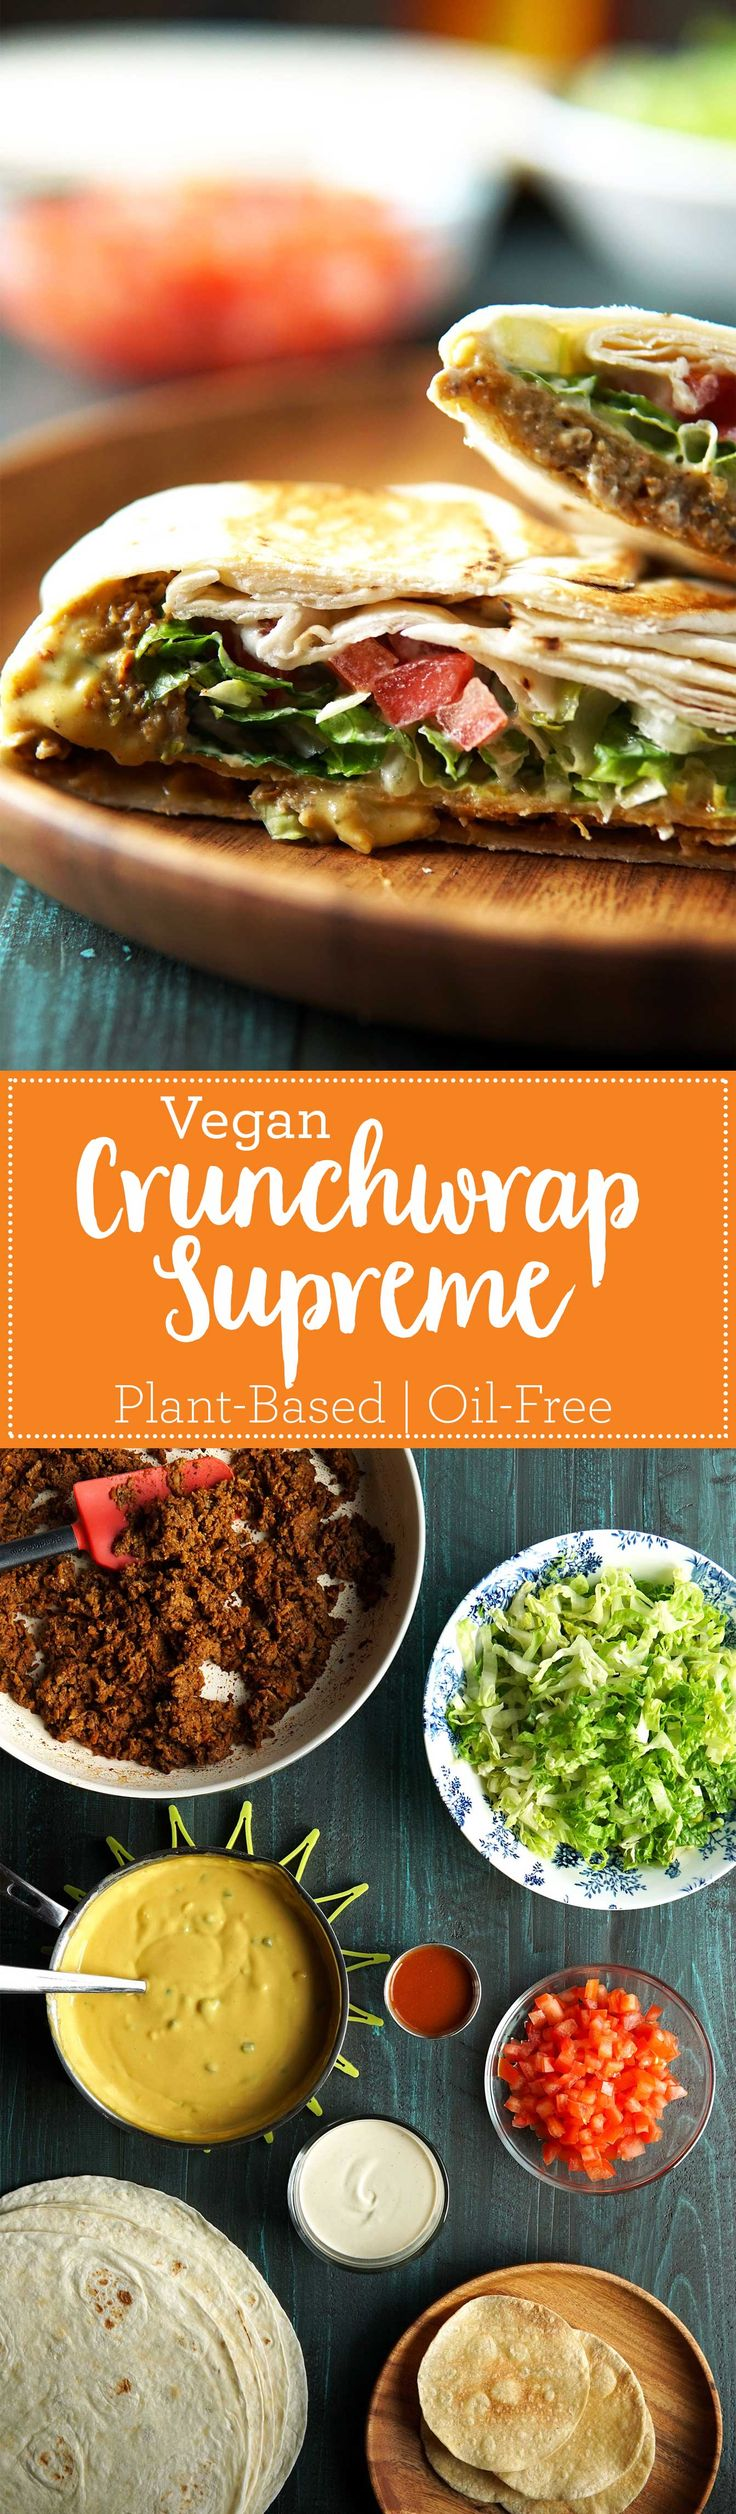 Vegan Crunchwrap Supreme - tastes even better than the drive-thru classic, and it's so healthy! Plant-based, oil-free, chock-full of flavor.